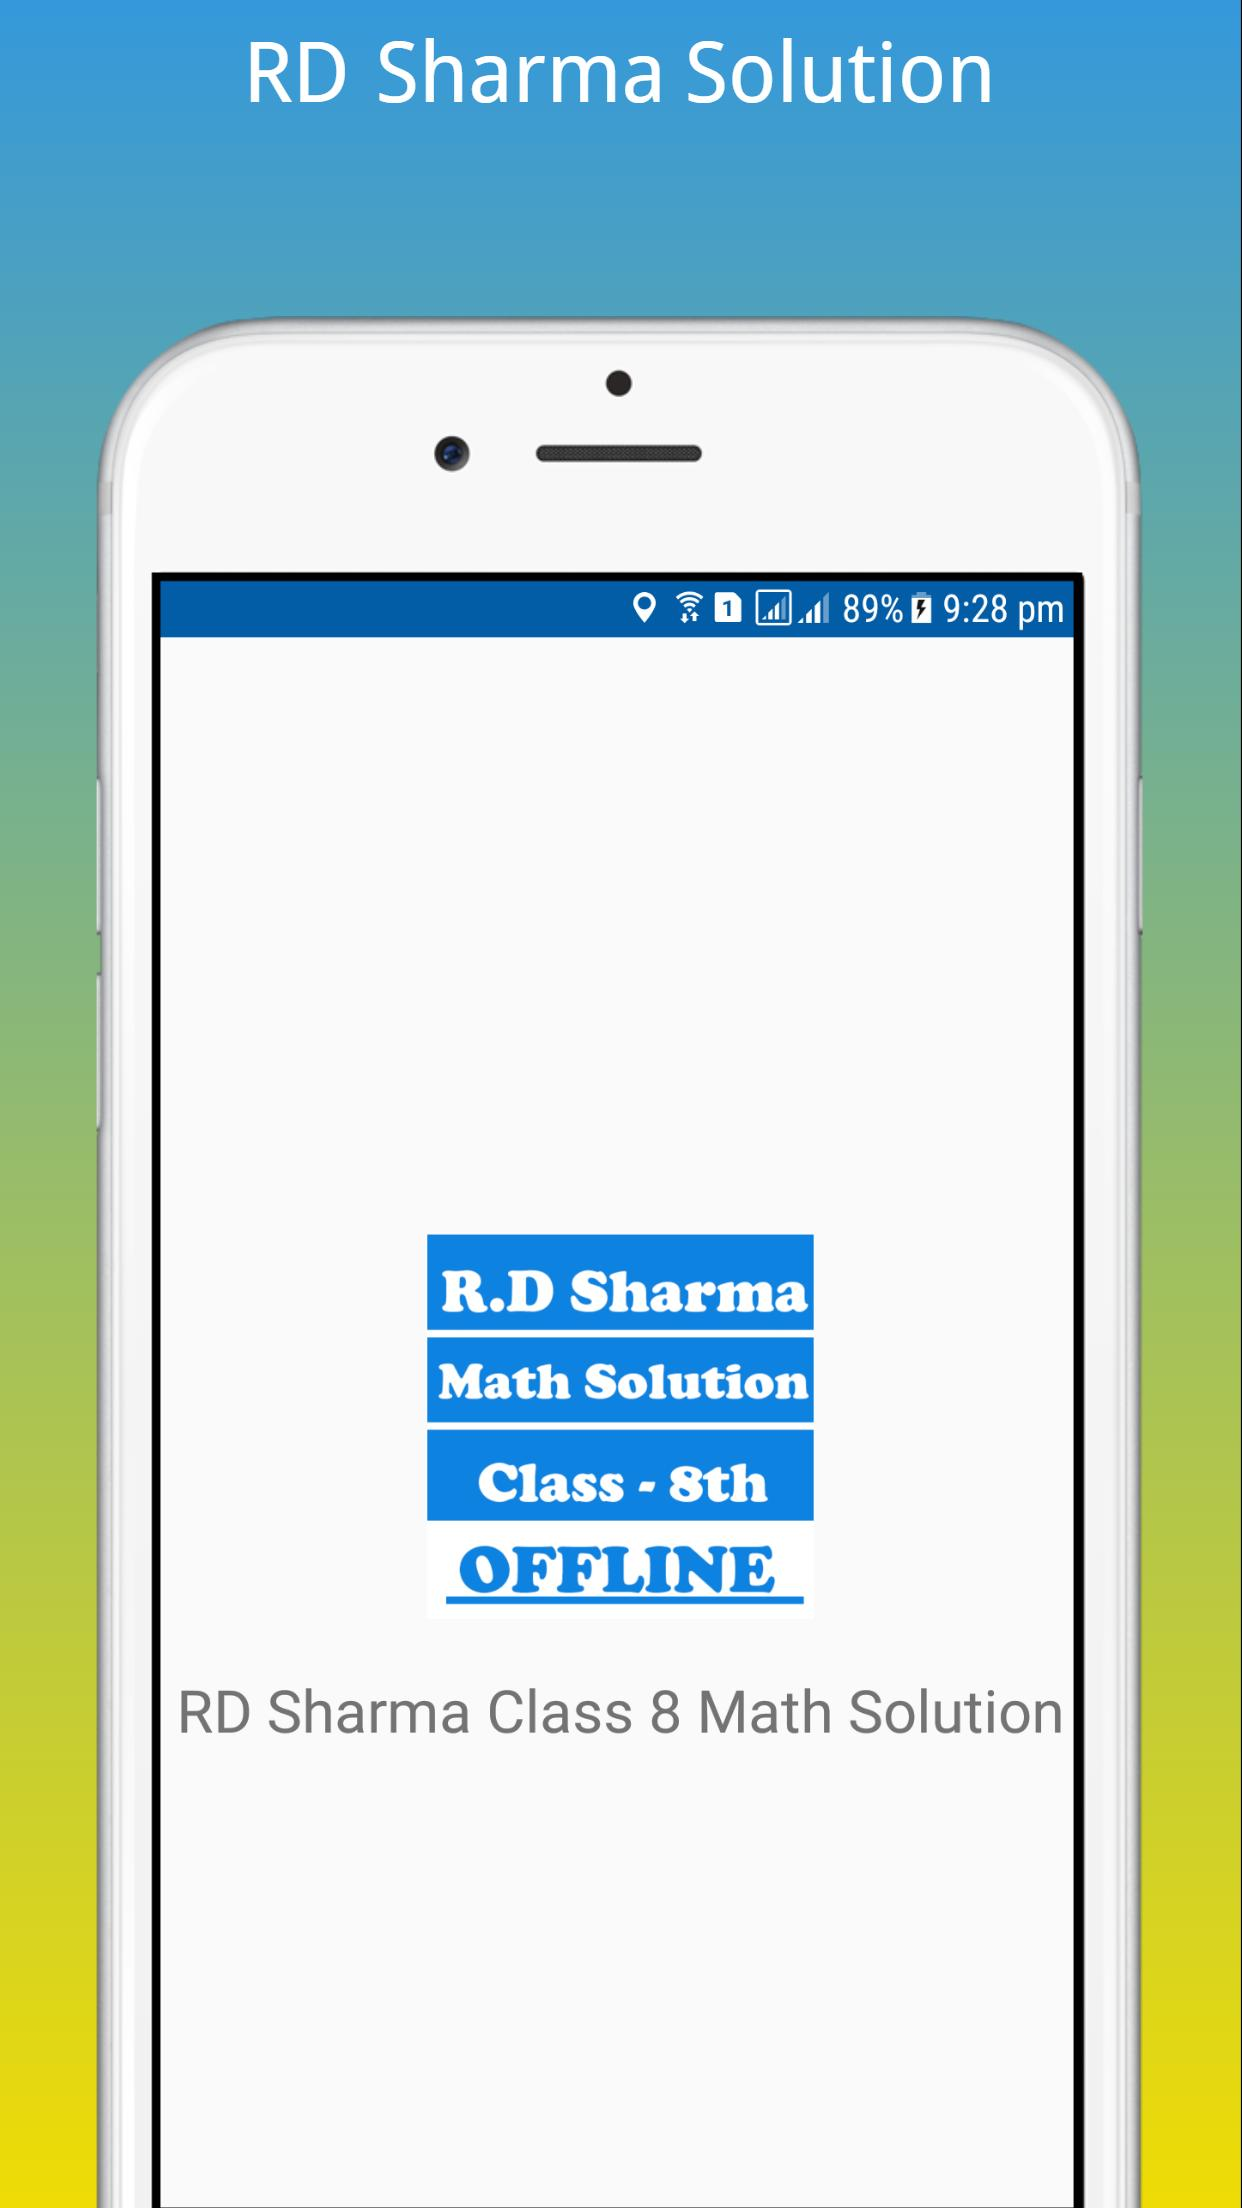 RD Sharma Class 8 Math Solution for Android - APK Download